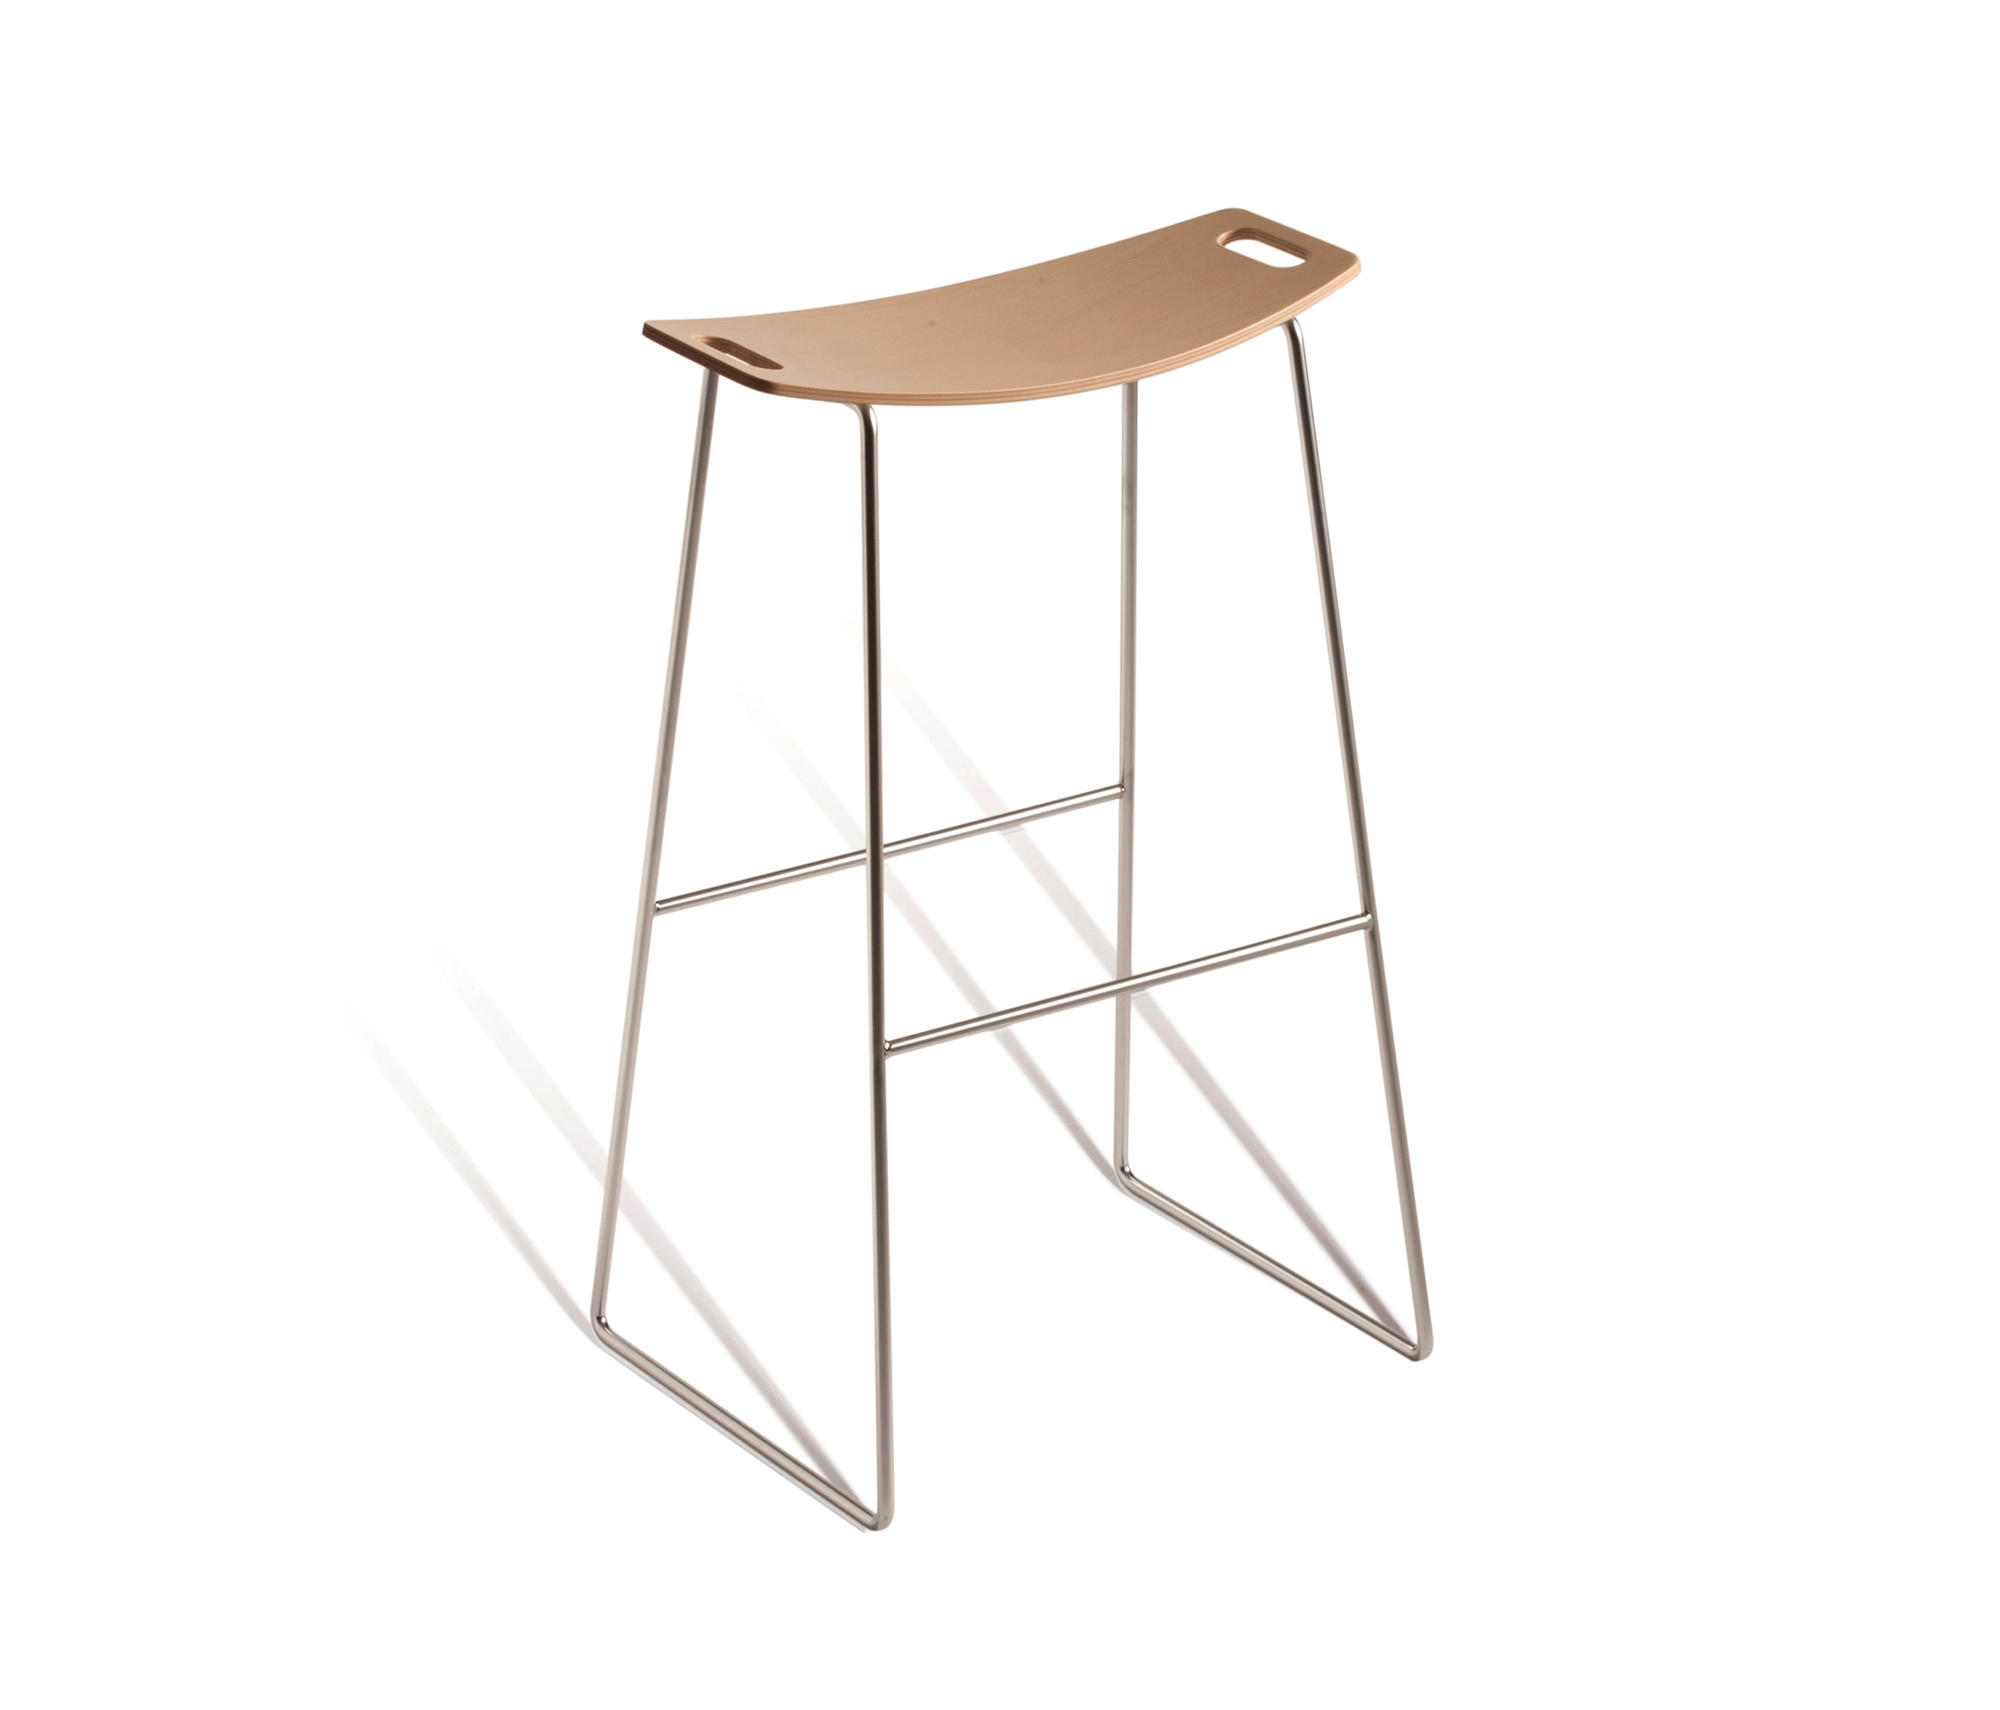 Tic 530 M Bar Stools From Capdell Architonic